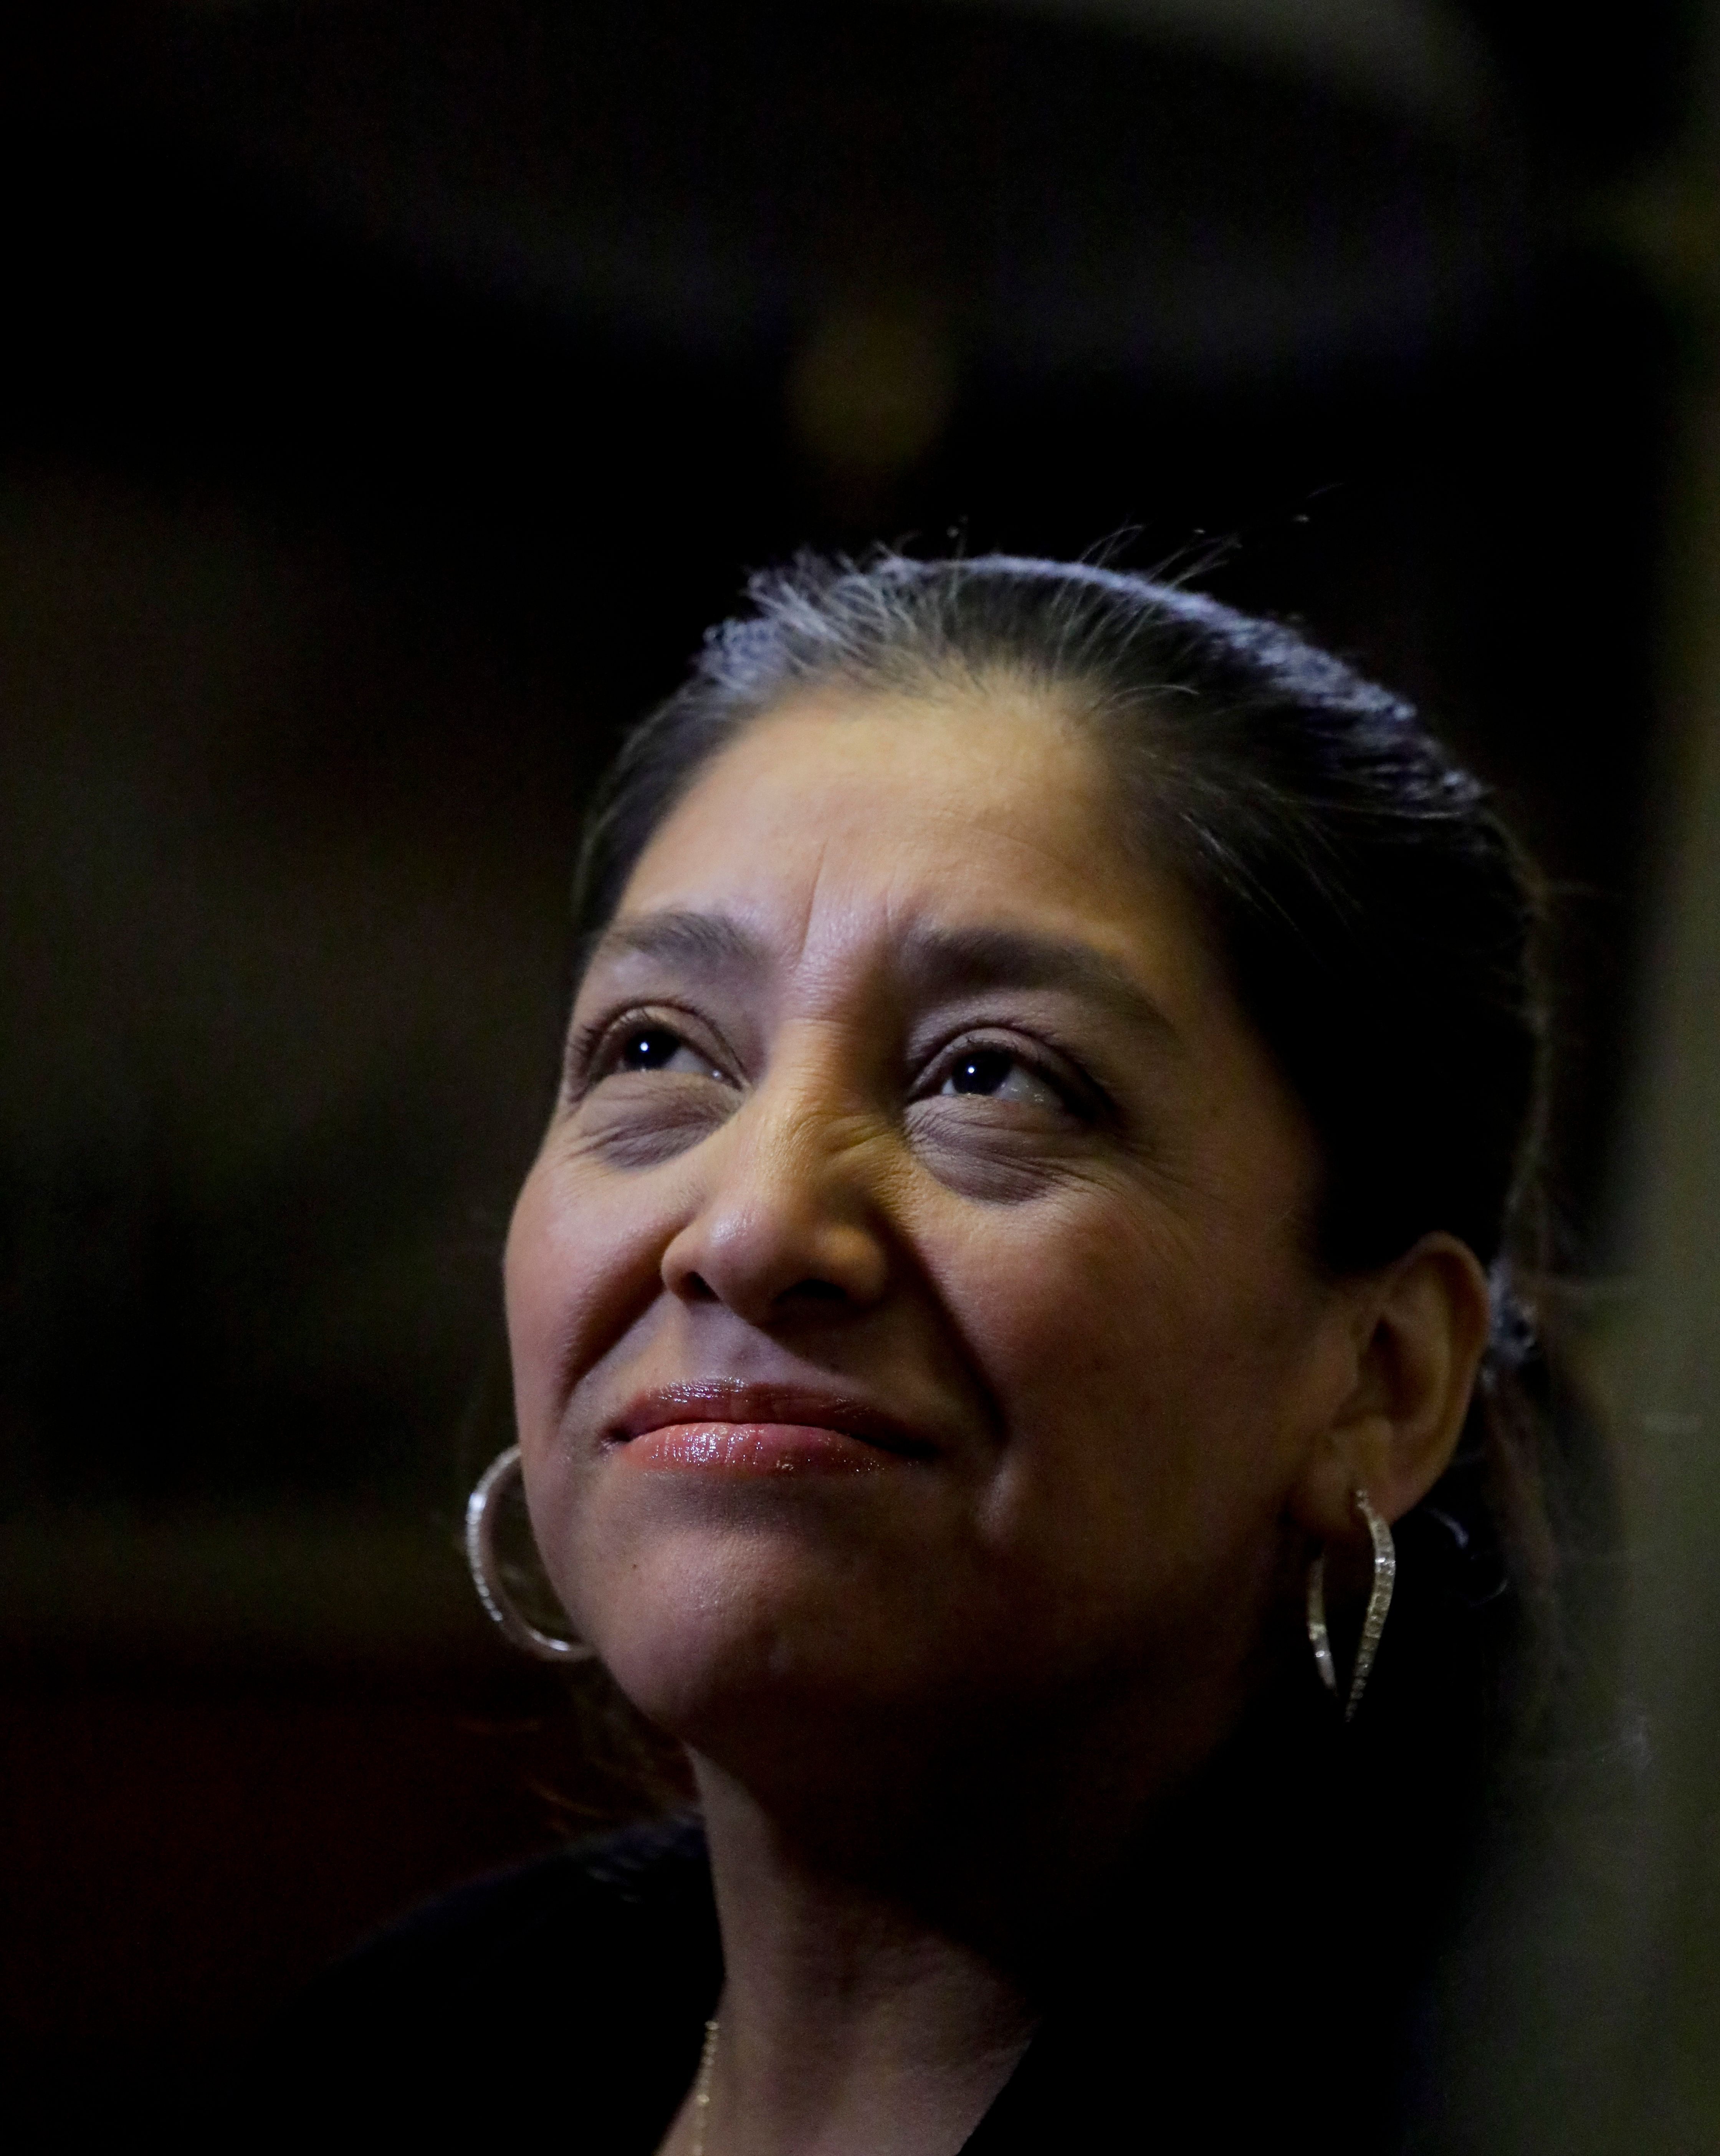 Victorina Morales recalls her experience working at President Donald Trump's golf resort in Bedminster, N.J., during an interview, Friday Dec. 7, 2018, in New York. Morales say she used false legal documents to get hired at the resort and supervisors knew it. (AP Photo/Bebeto Matthews)